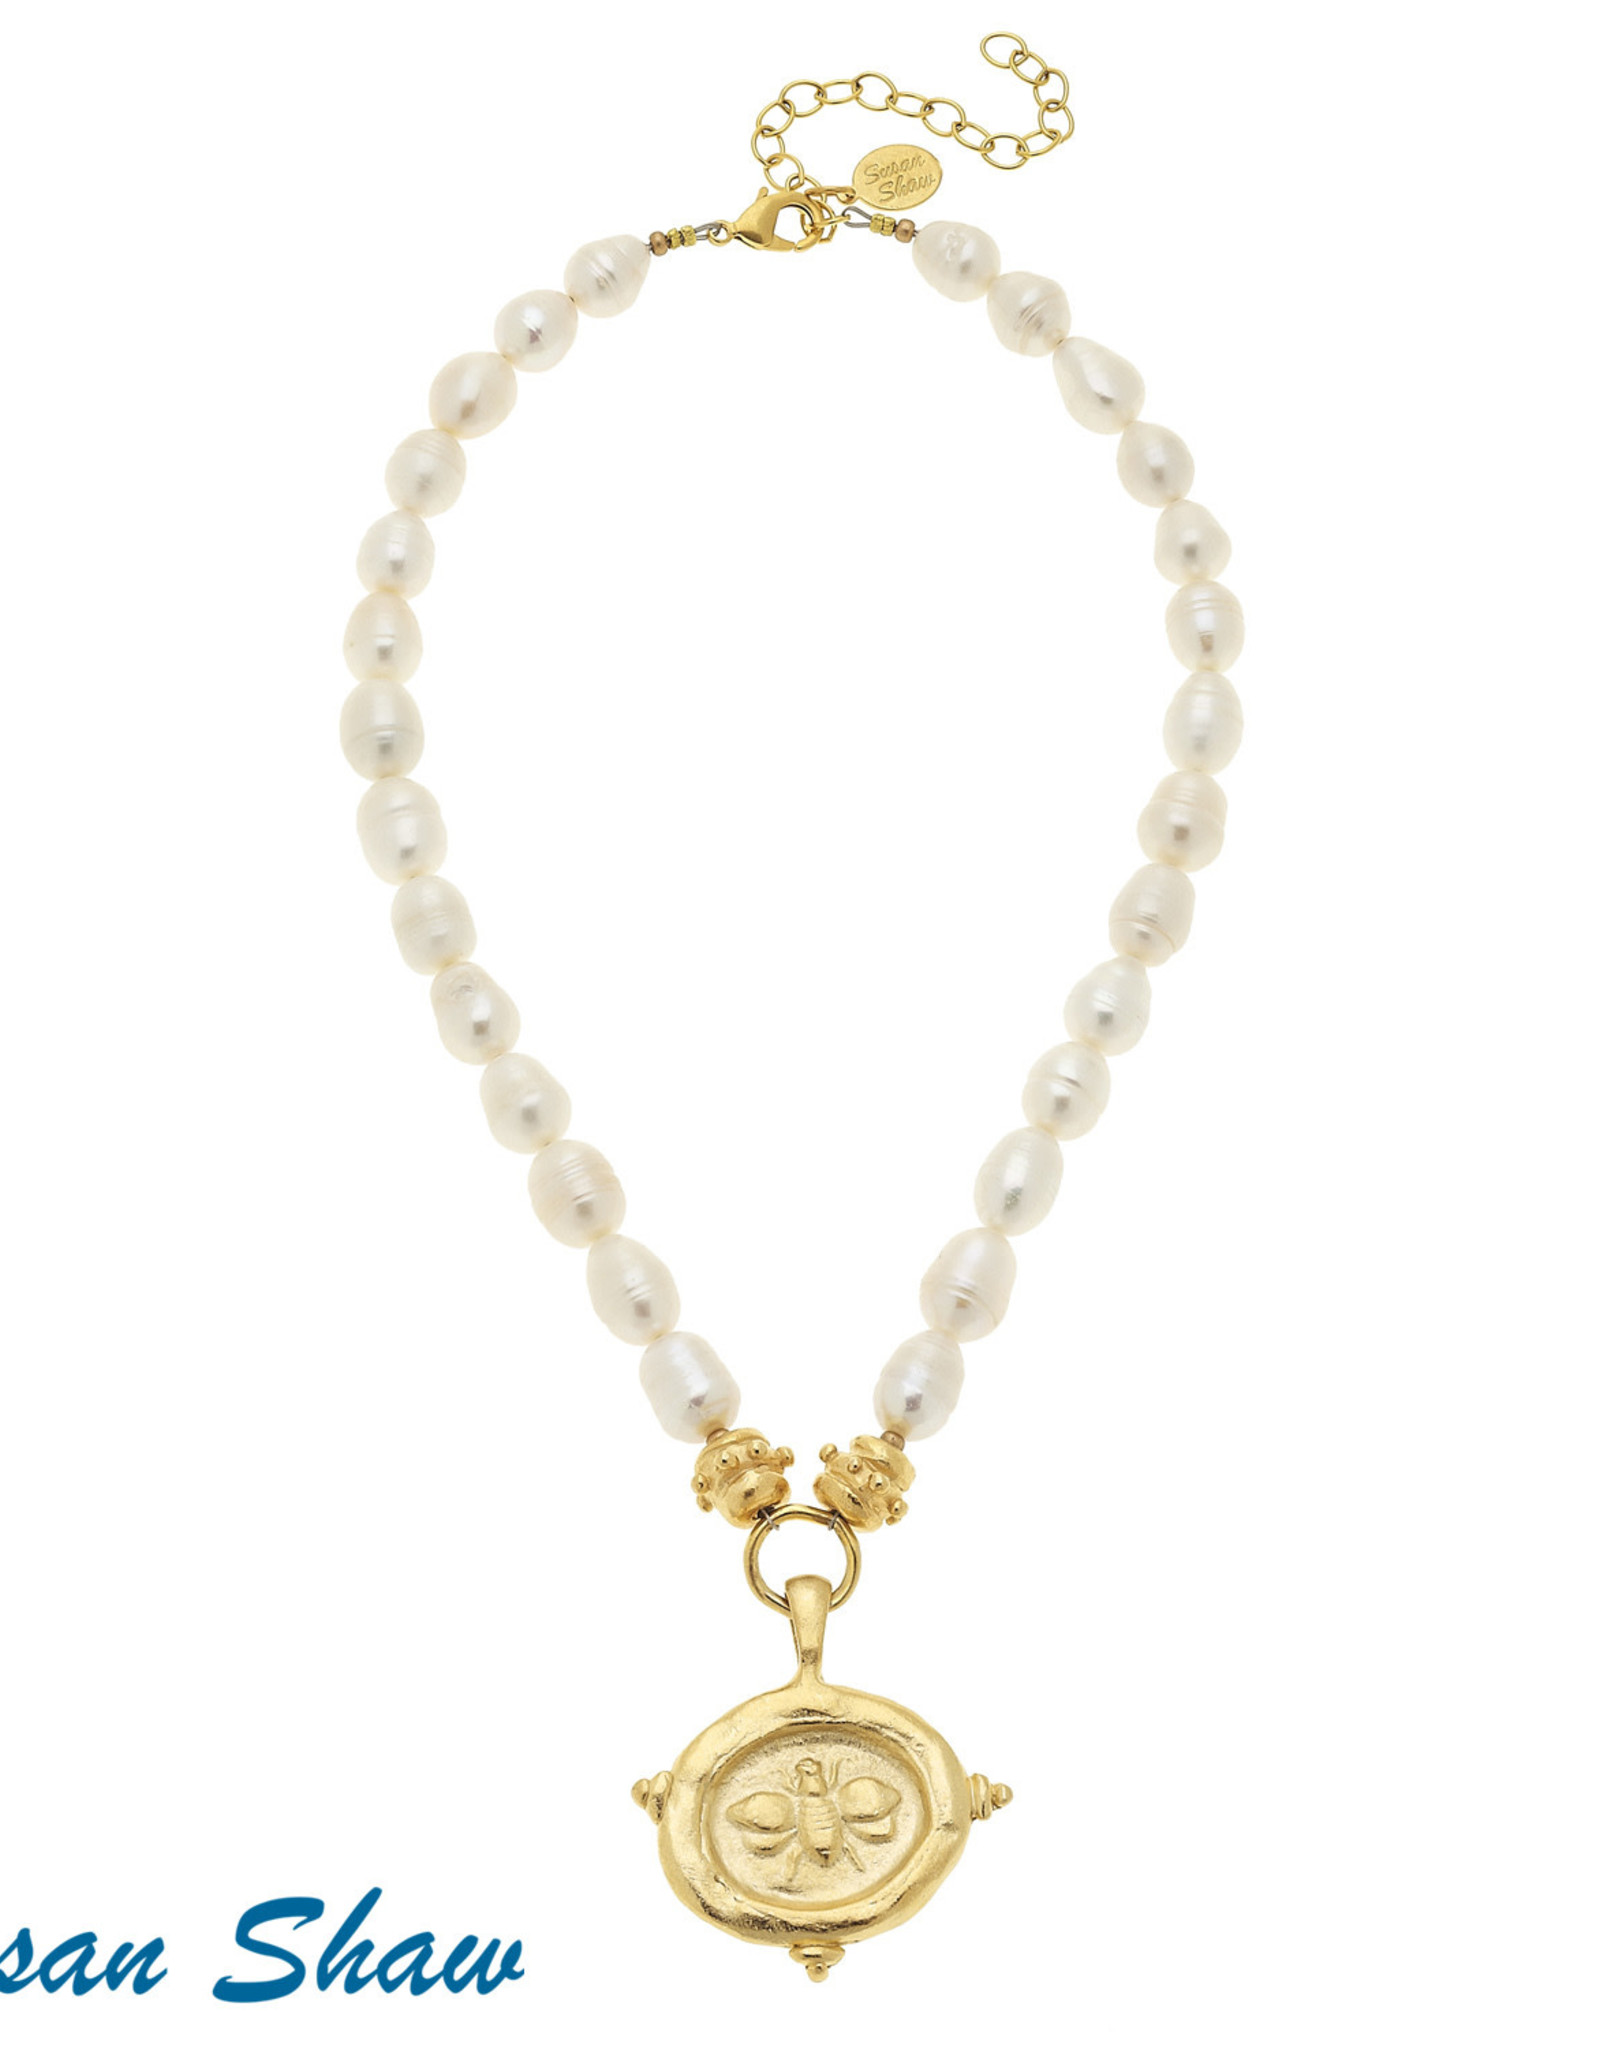 Susan Shaw Shaw Necklace Pearls/GOLD Bee Medallion